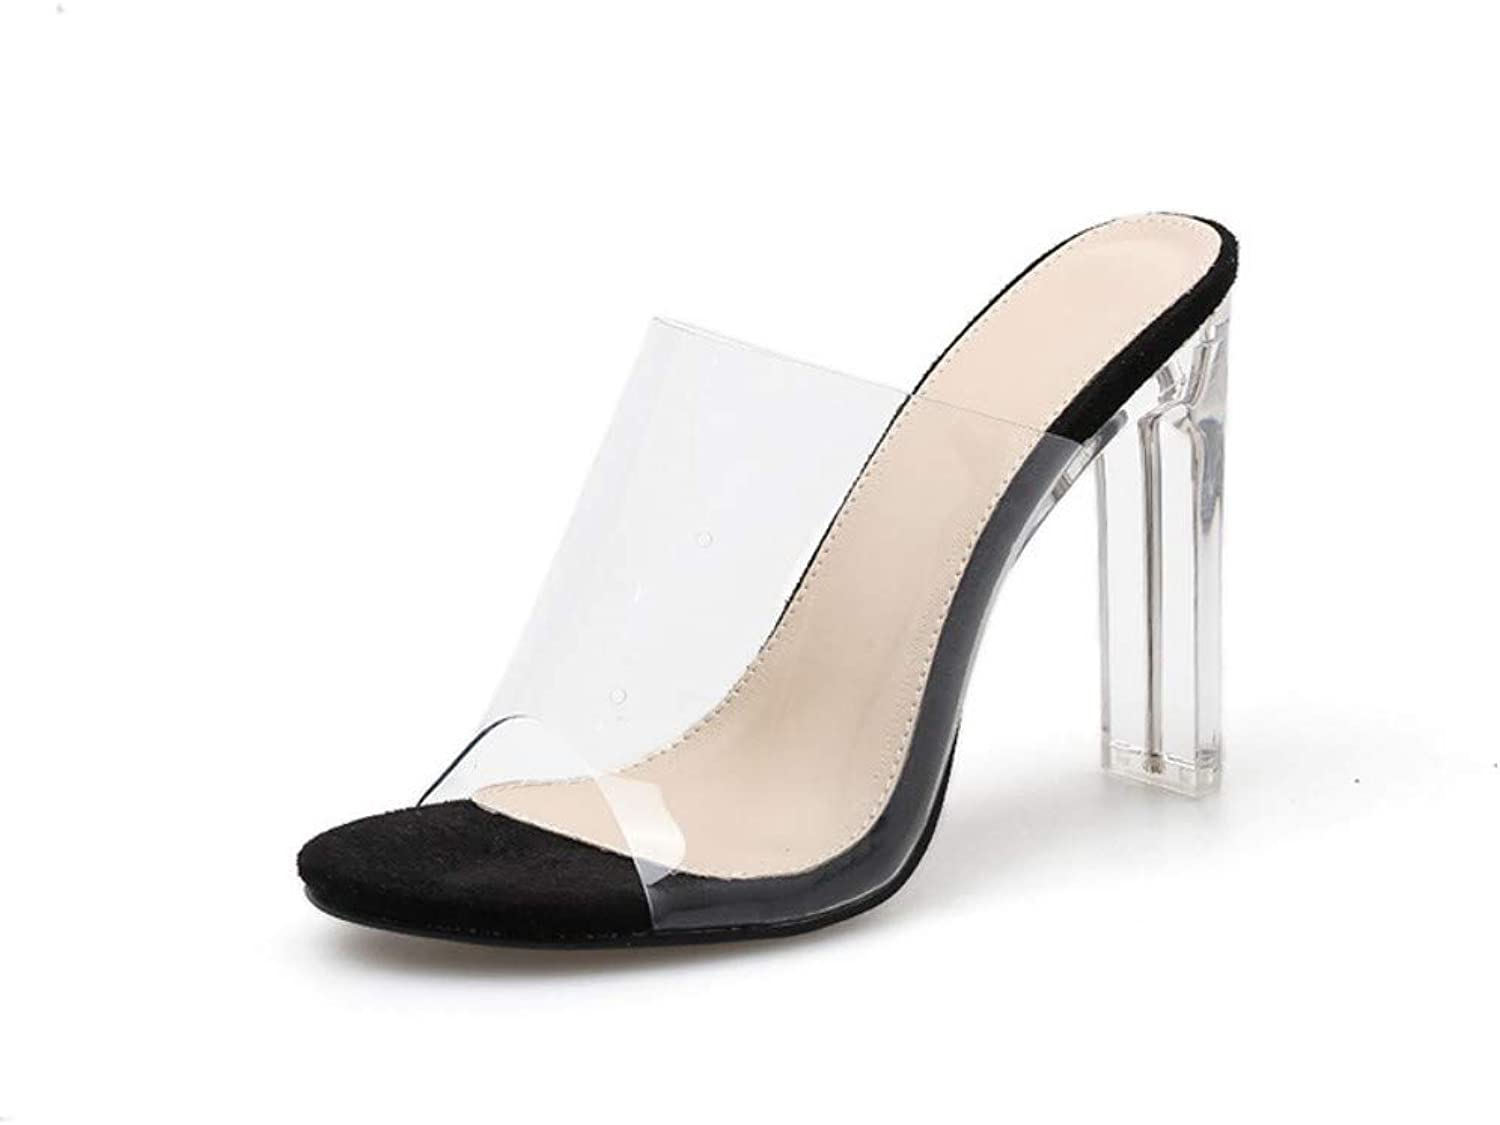 JQfashion Women's High-Heeled shoes Transparent PVC Sandals Muller Slippers